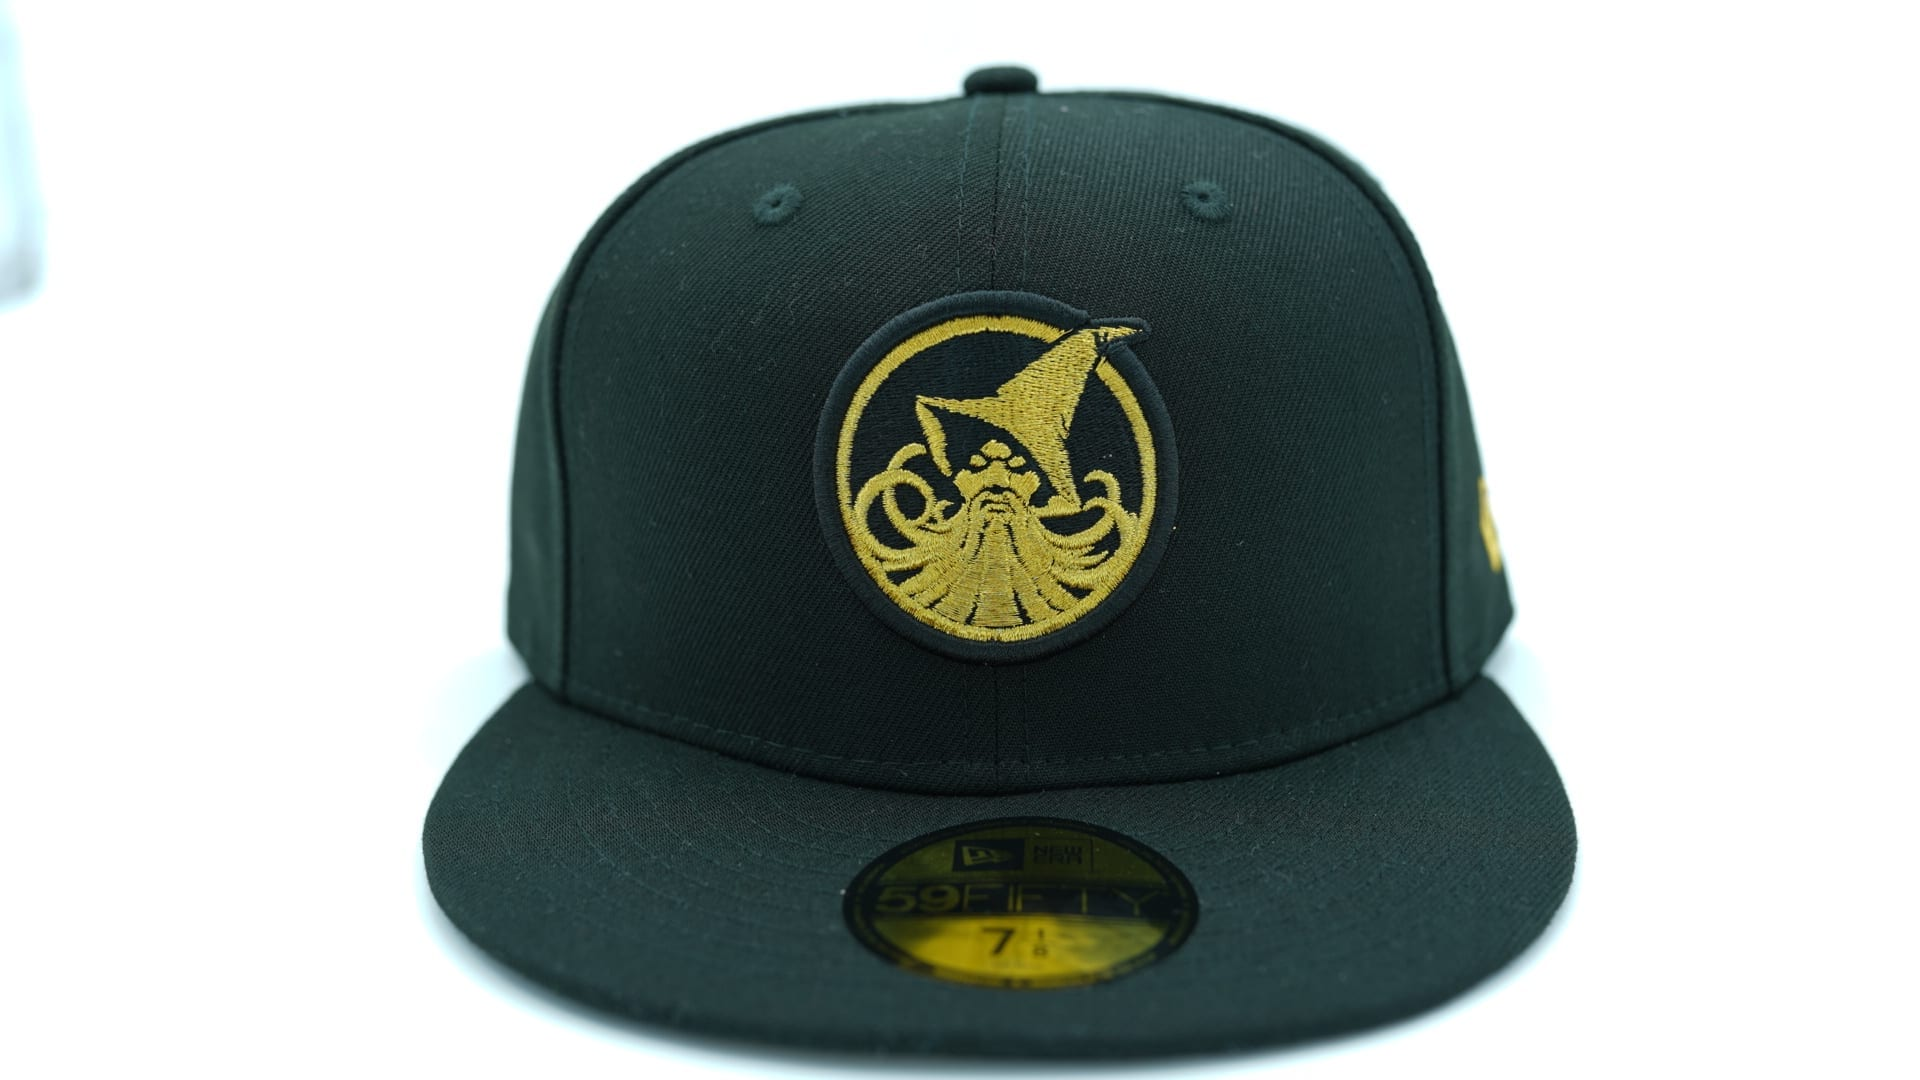 8e792ed0261f76 Anaheim Ducks x Los Angeles Angels of Anaheim 59Fifty Fitted Baseball Cap  by NEW ERA